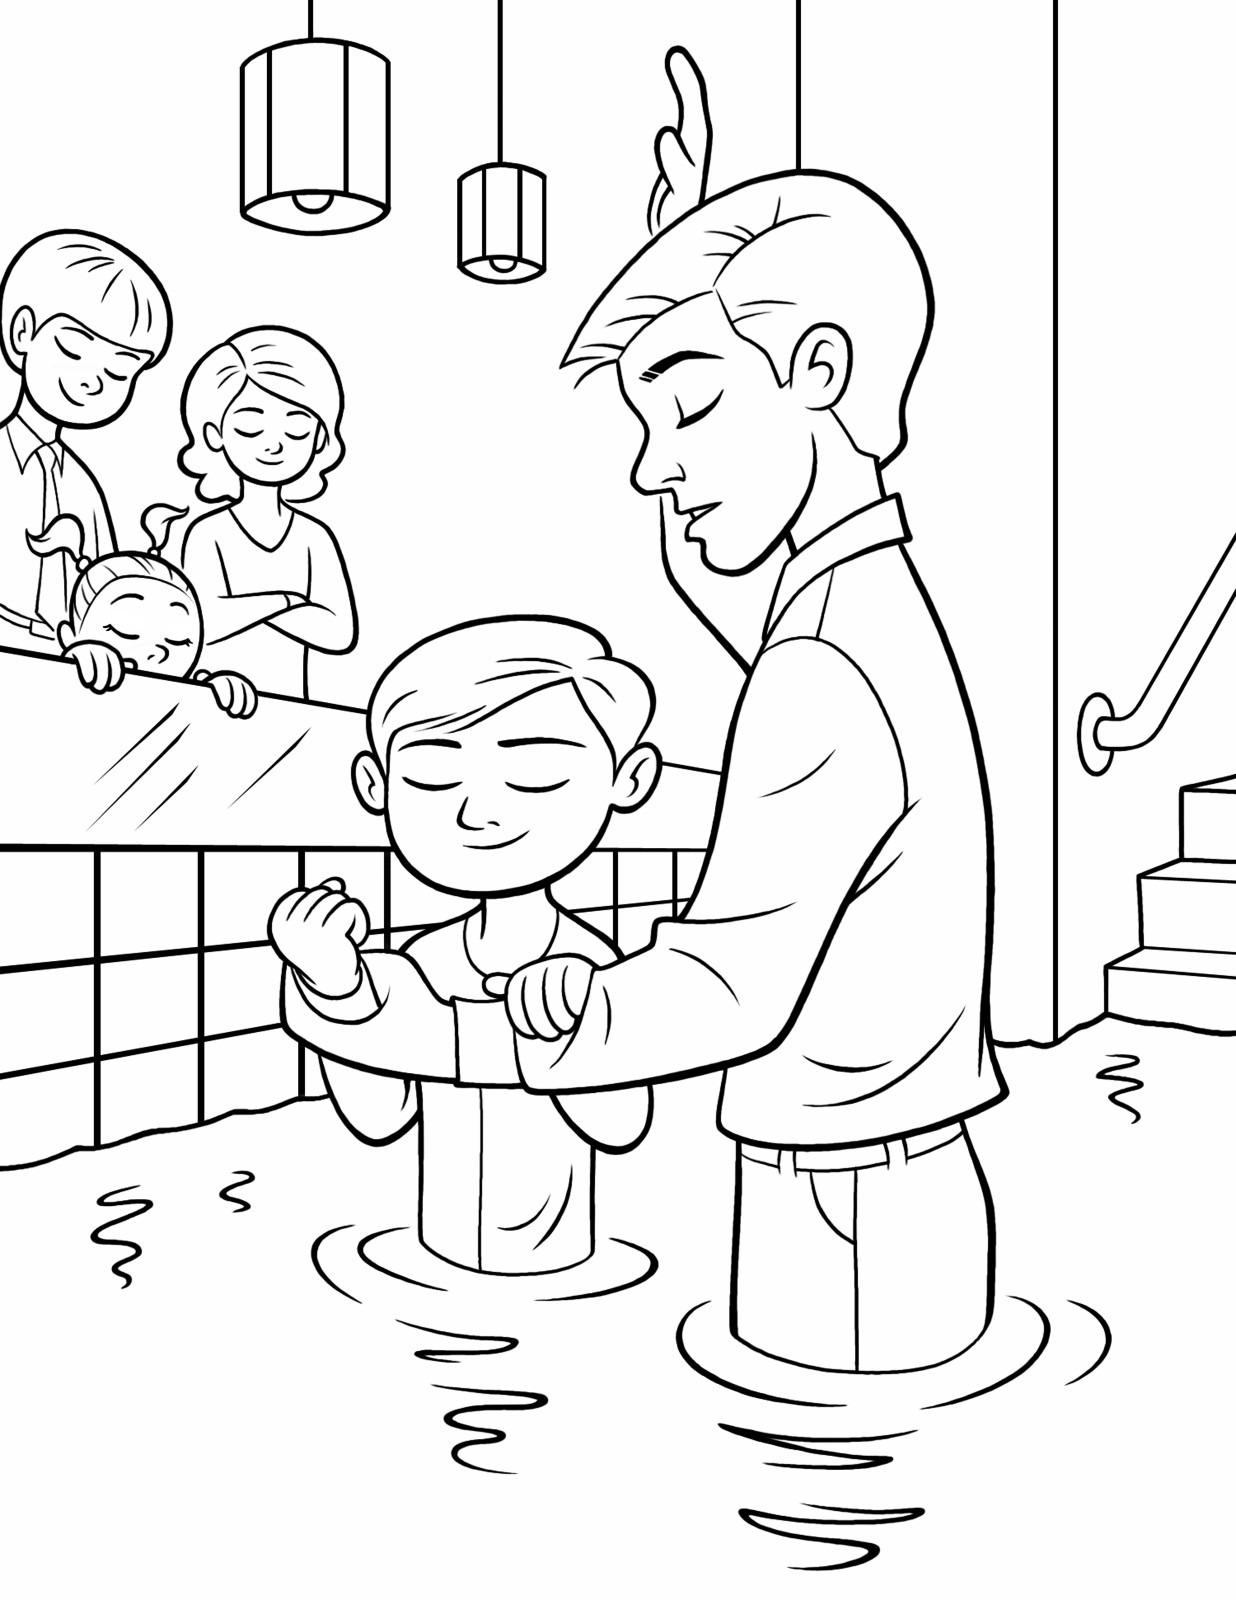 Lds Chruch Coloring Pages For Boys  Baptism